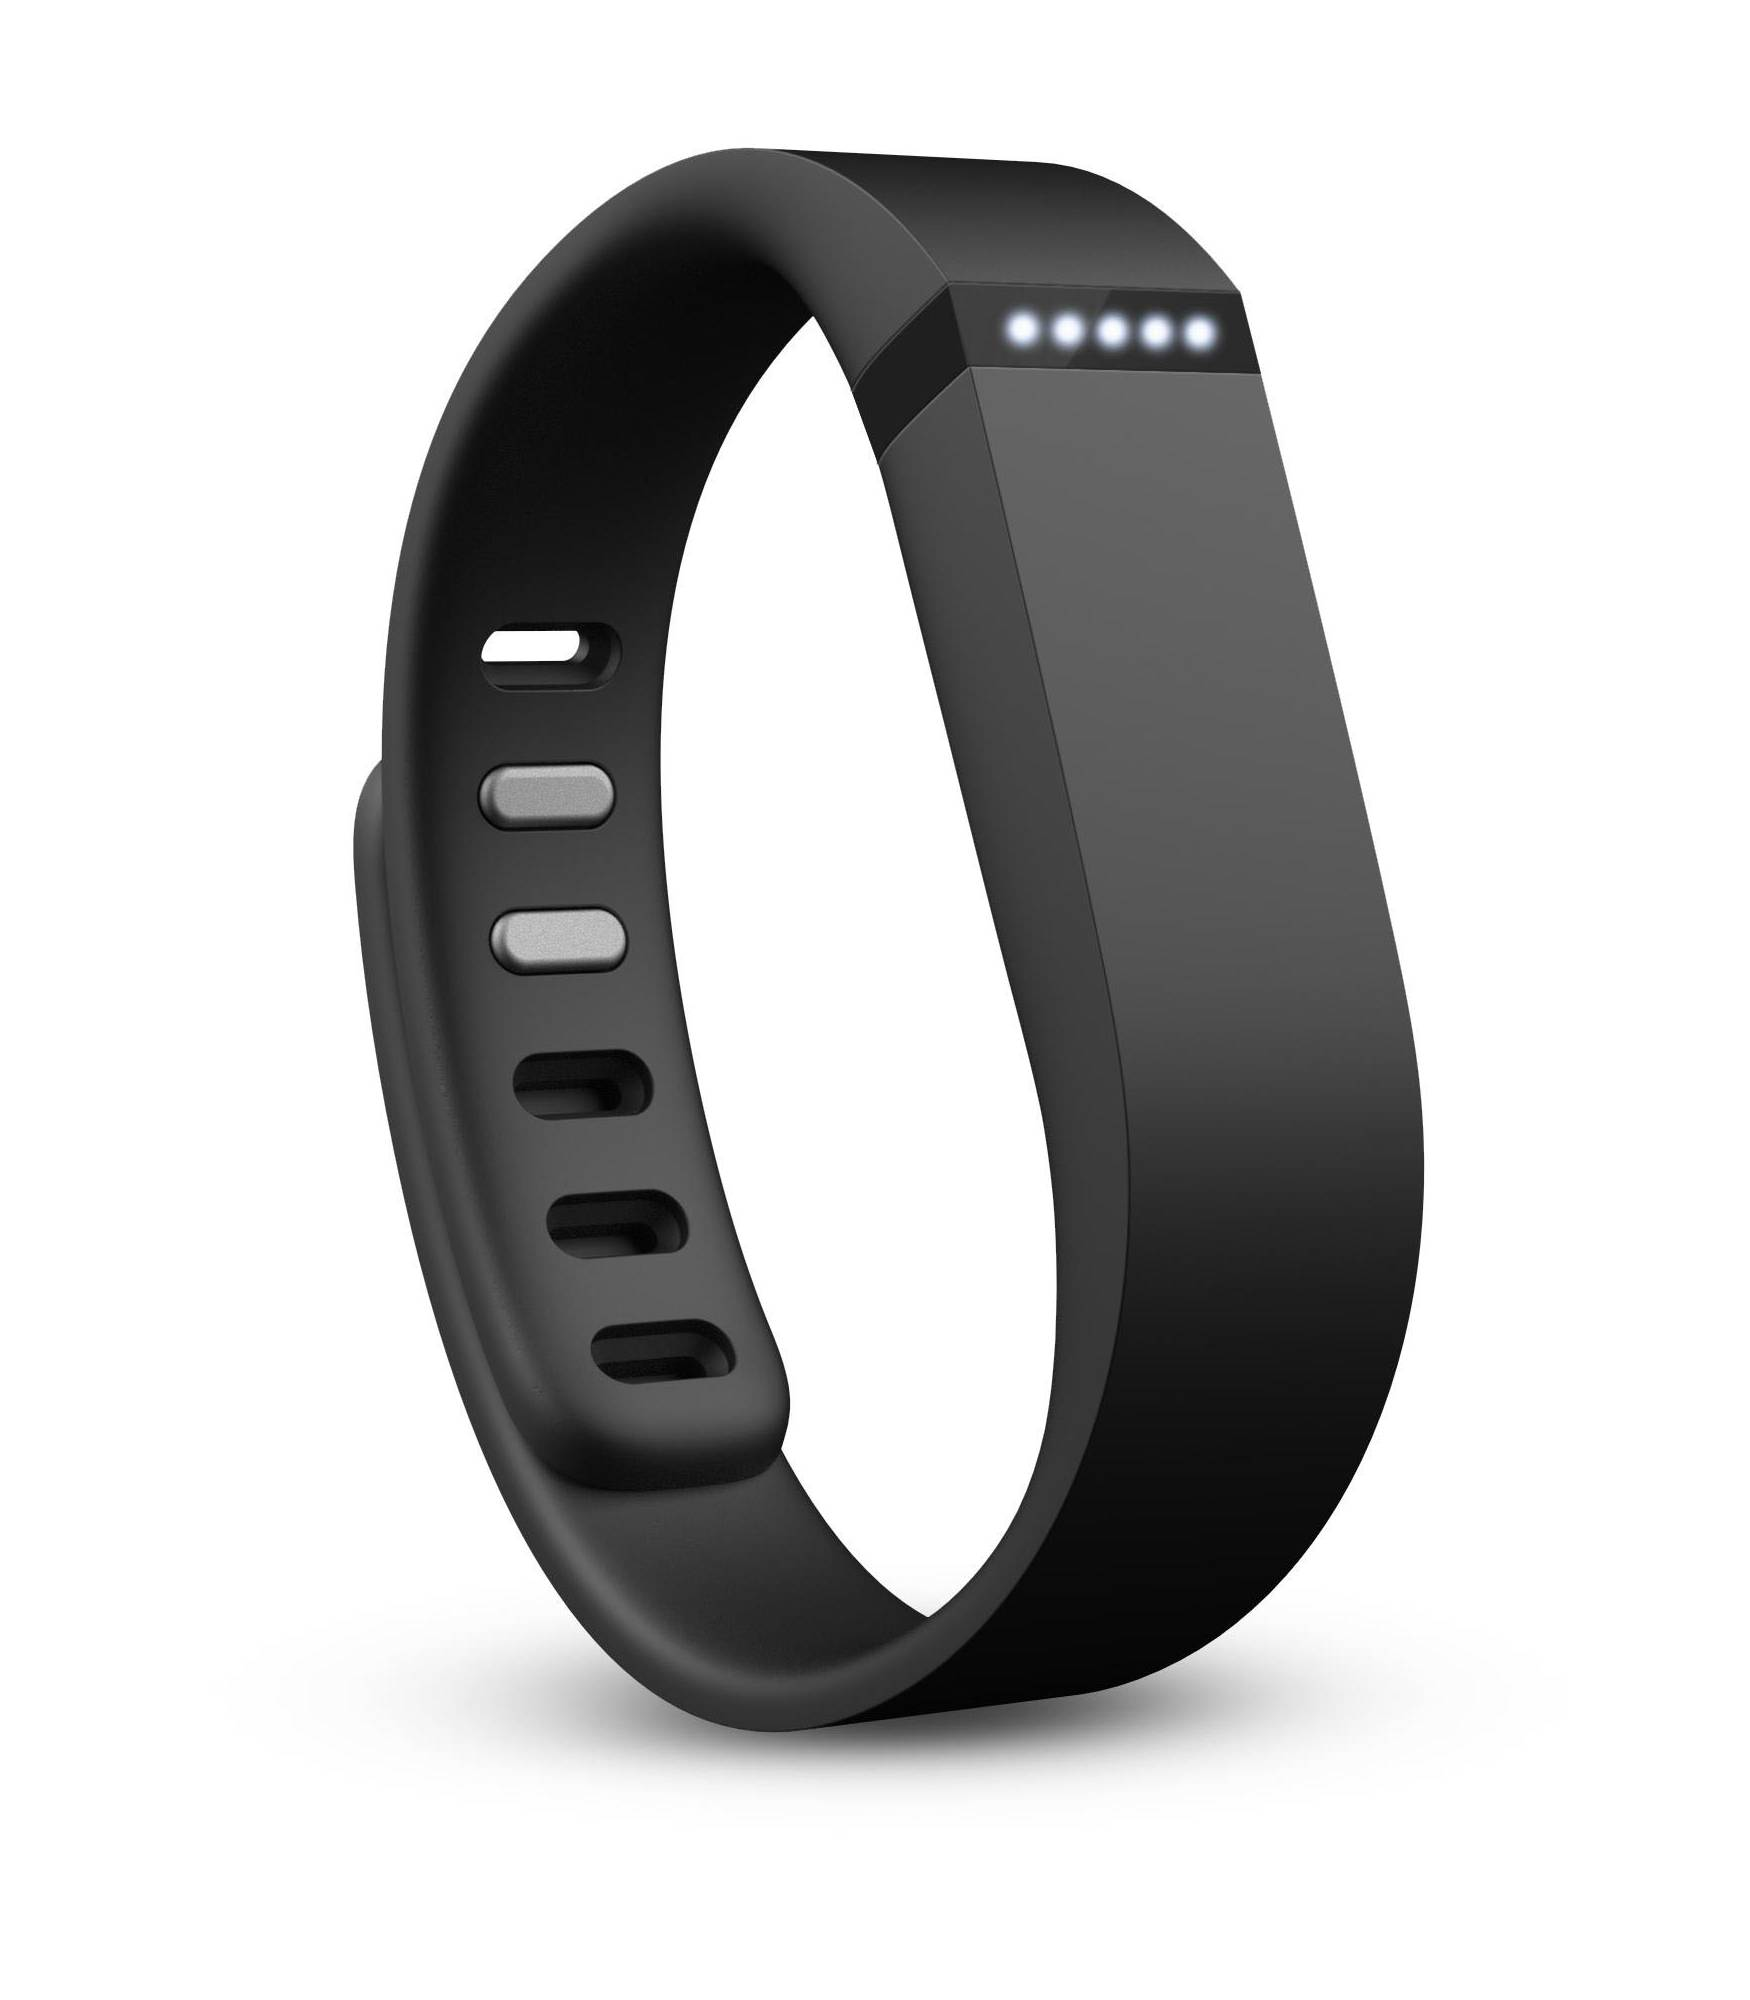 Fitbit Flex Wireless Activity & Sleep Wristband black